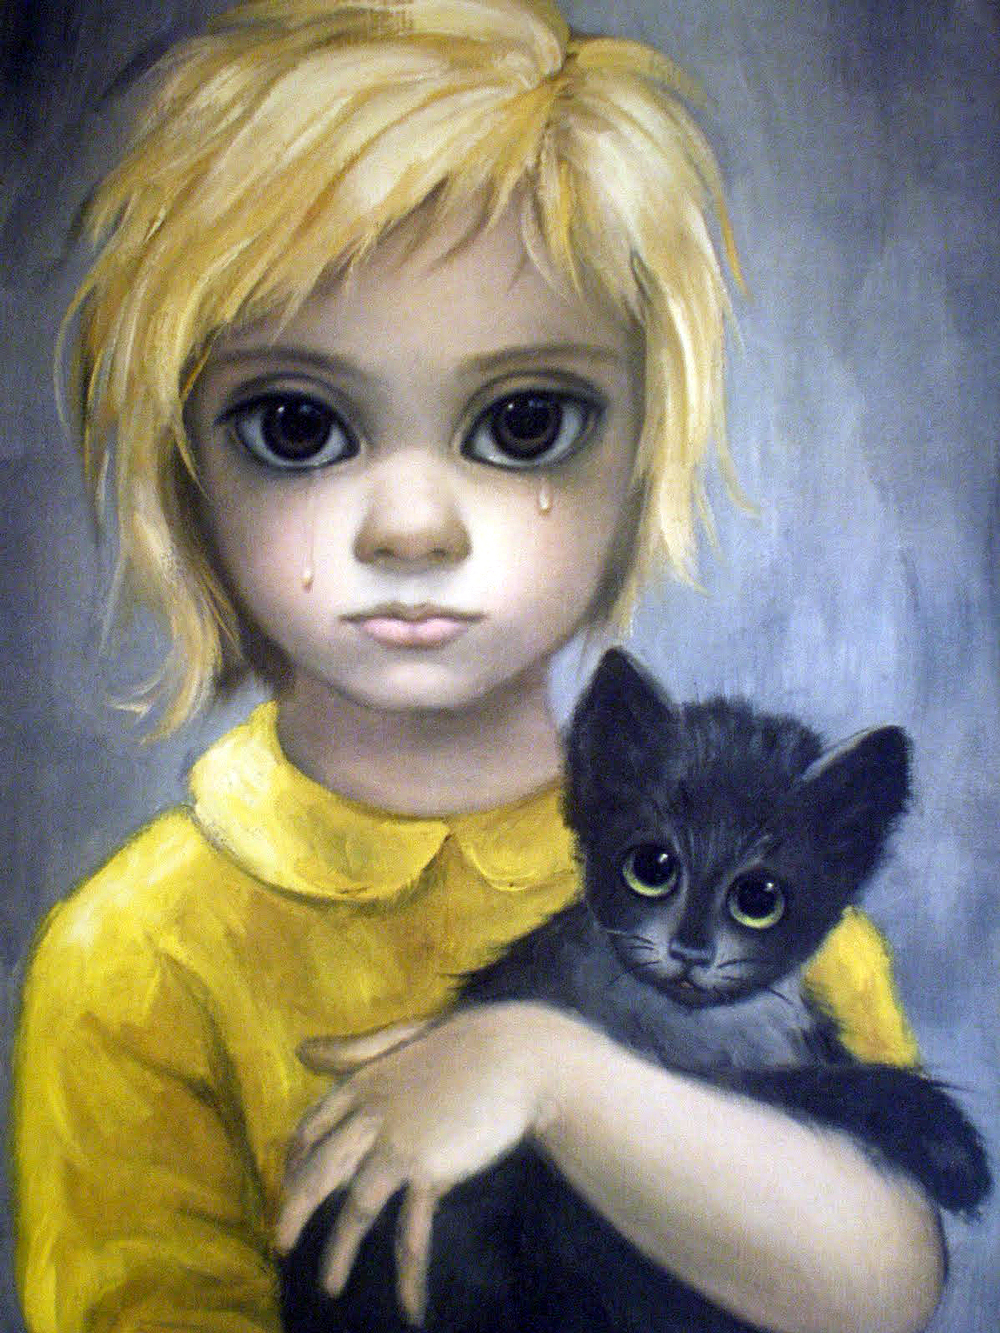 Big Eyes Art by keane